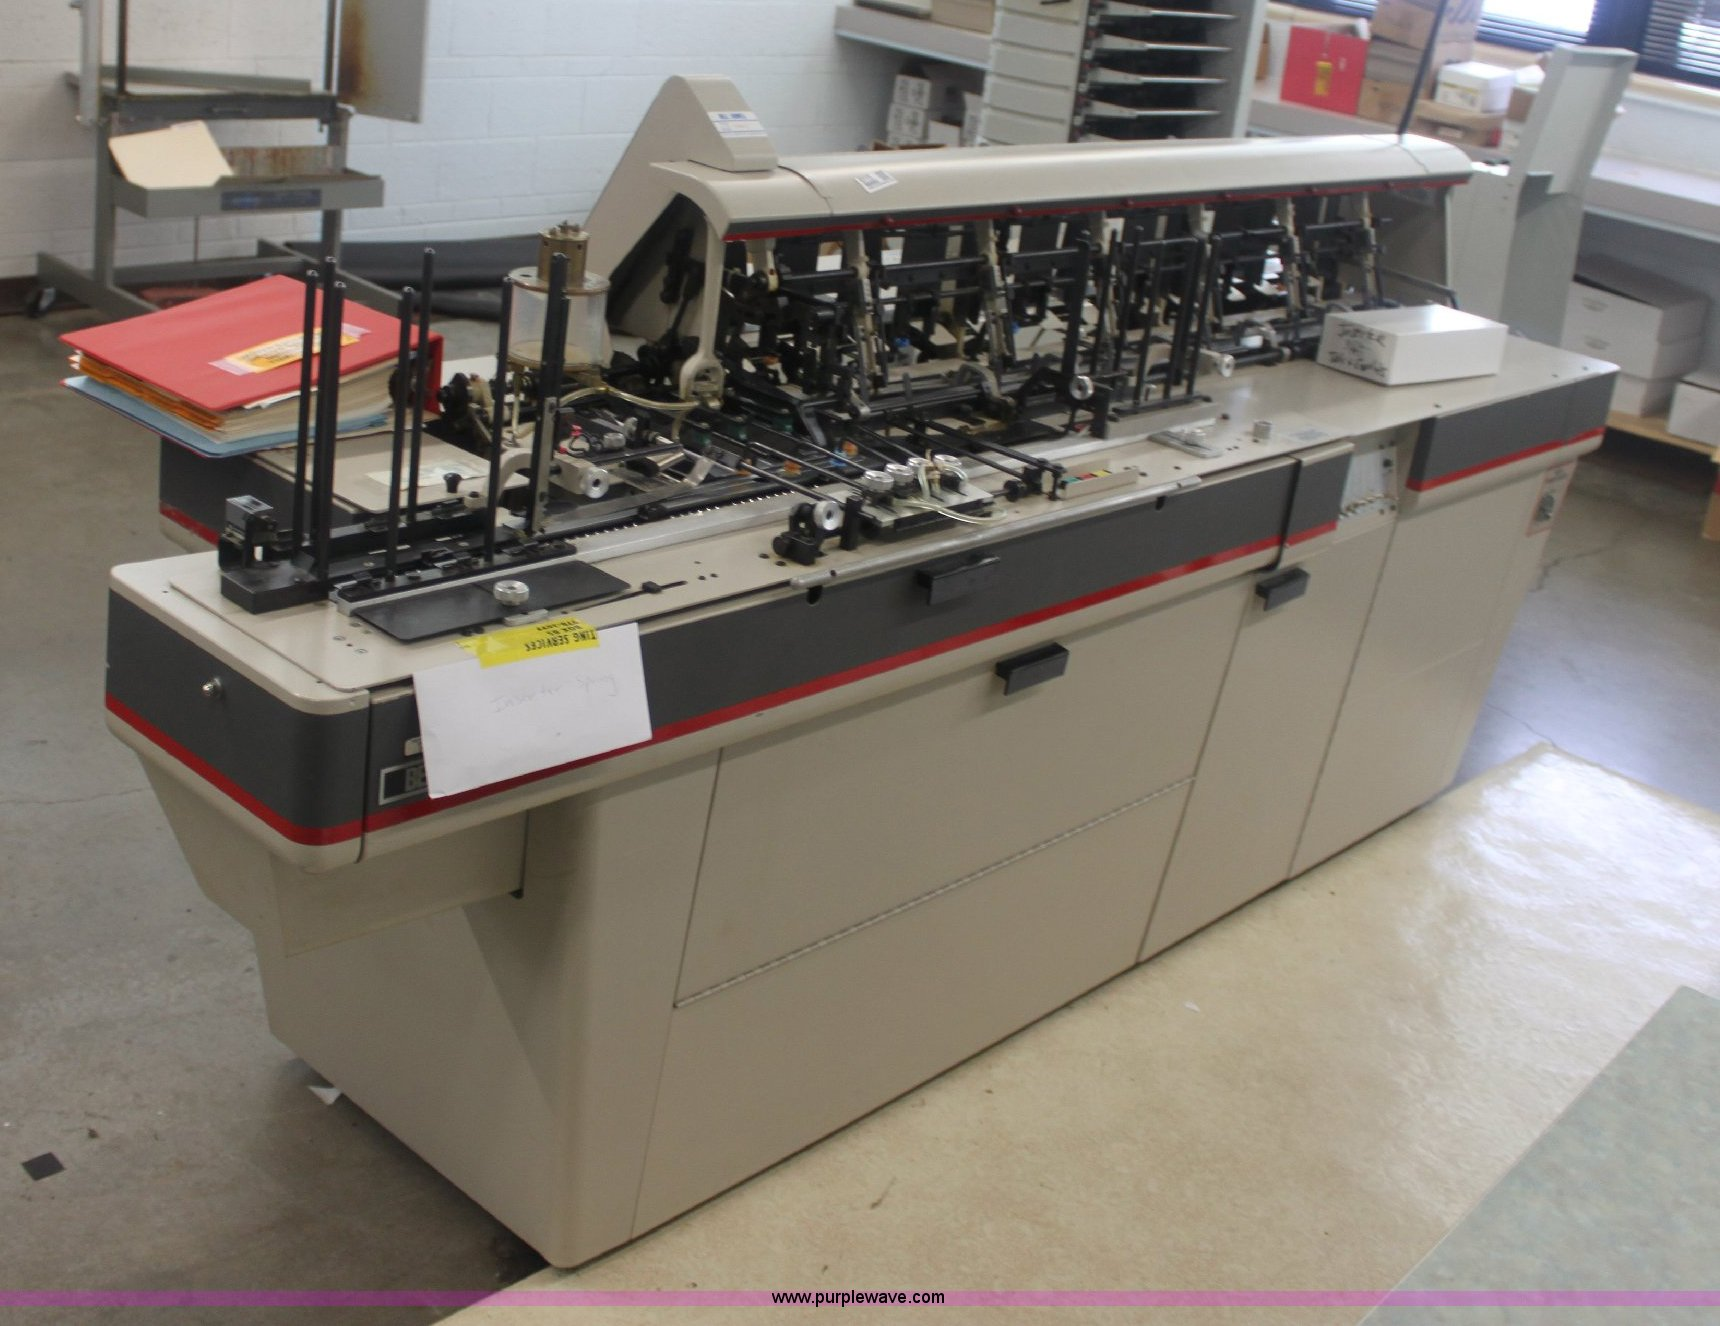 Bell & Howell Phillipsburg inserting machine | Item 6115